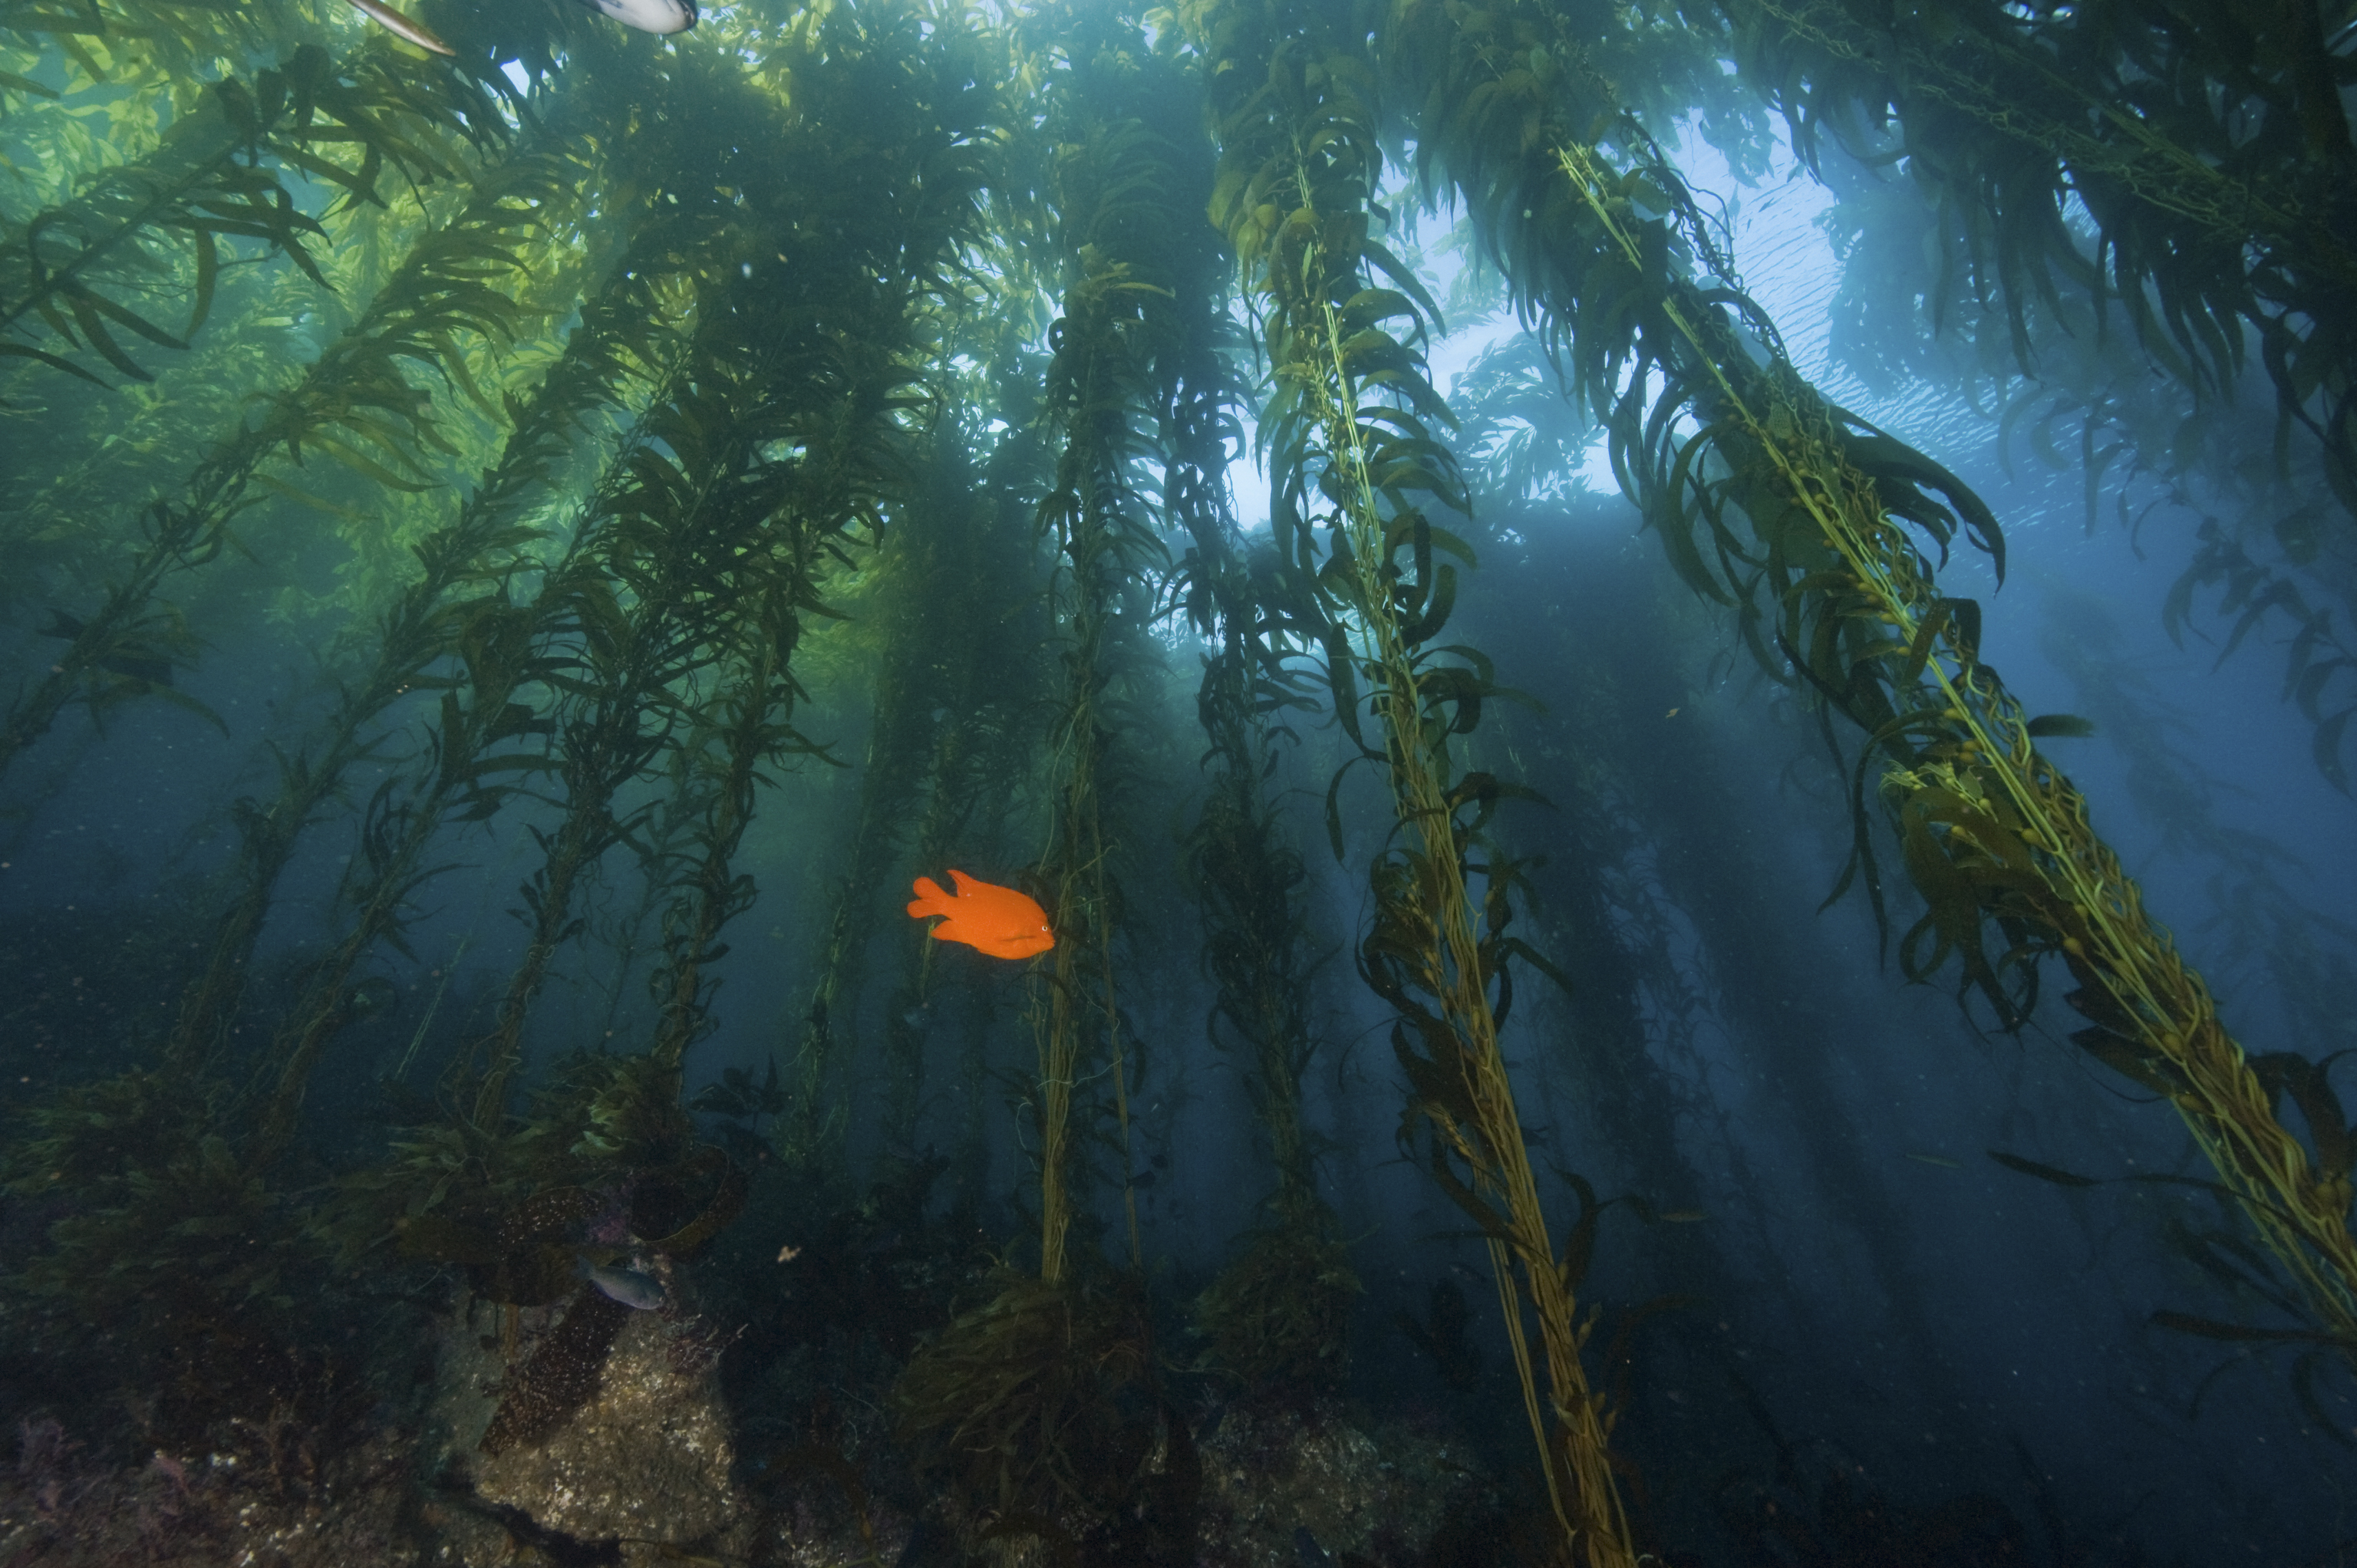 <p>The ocean may offer potential carbon removal options, like seaweed cultivation, that could also have ecological benefits. Photo by the National Parks Service</p>